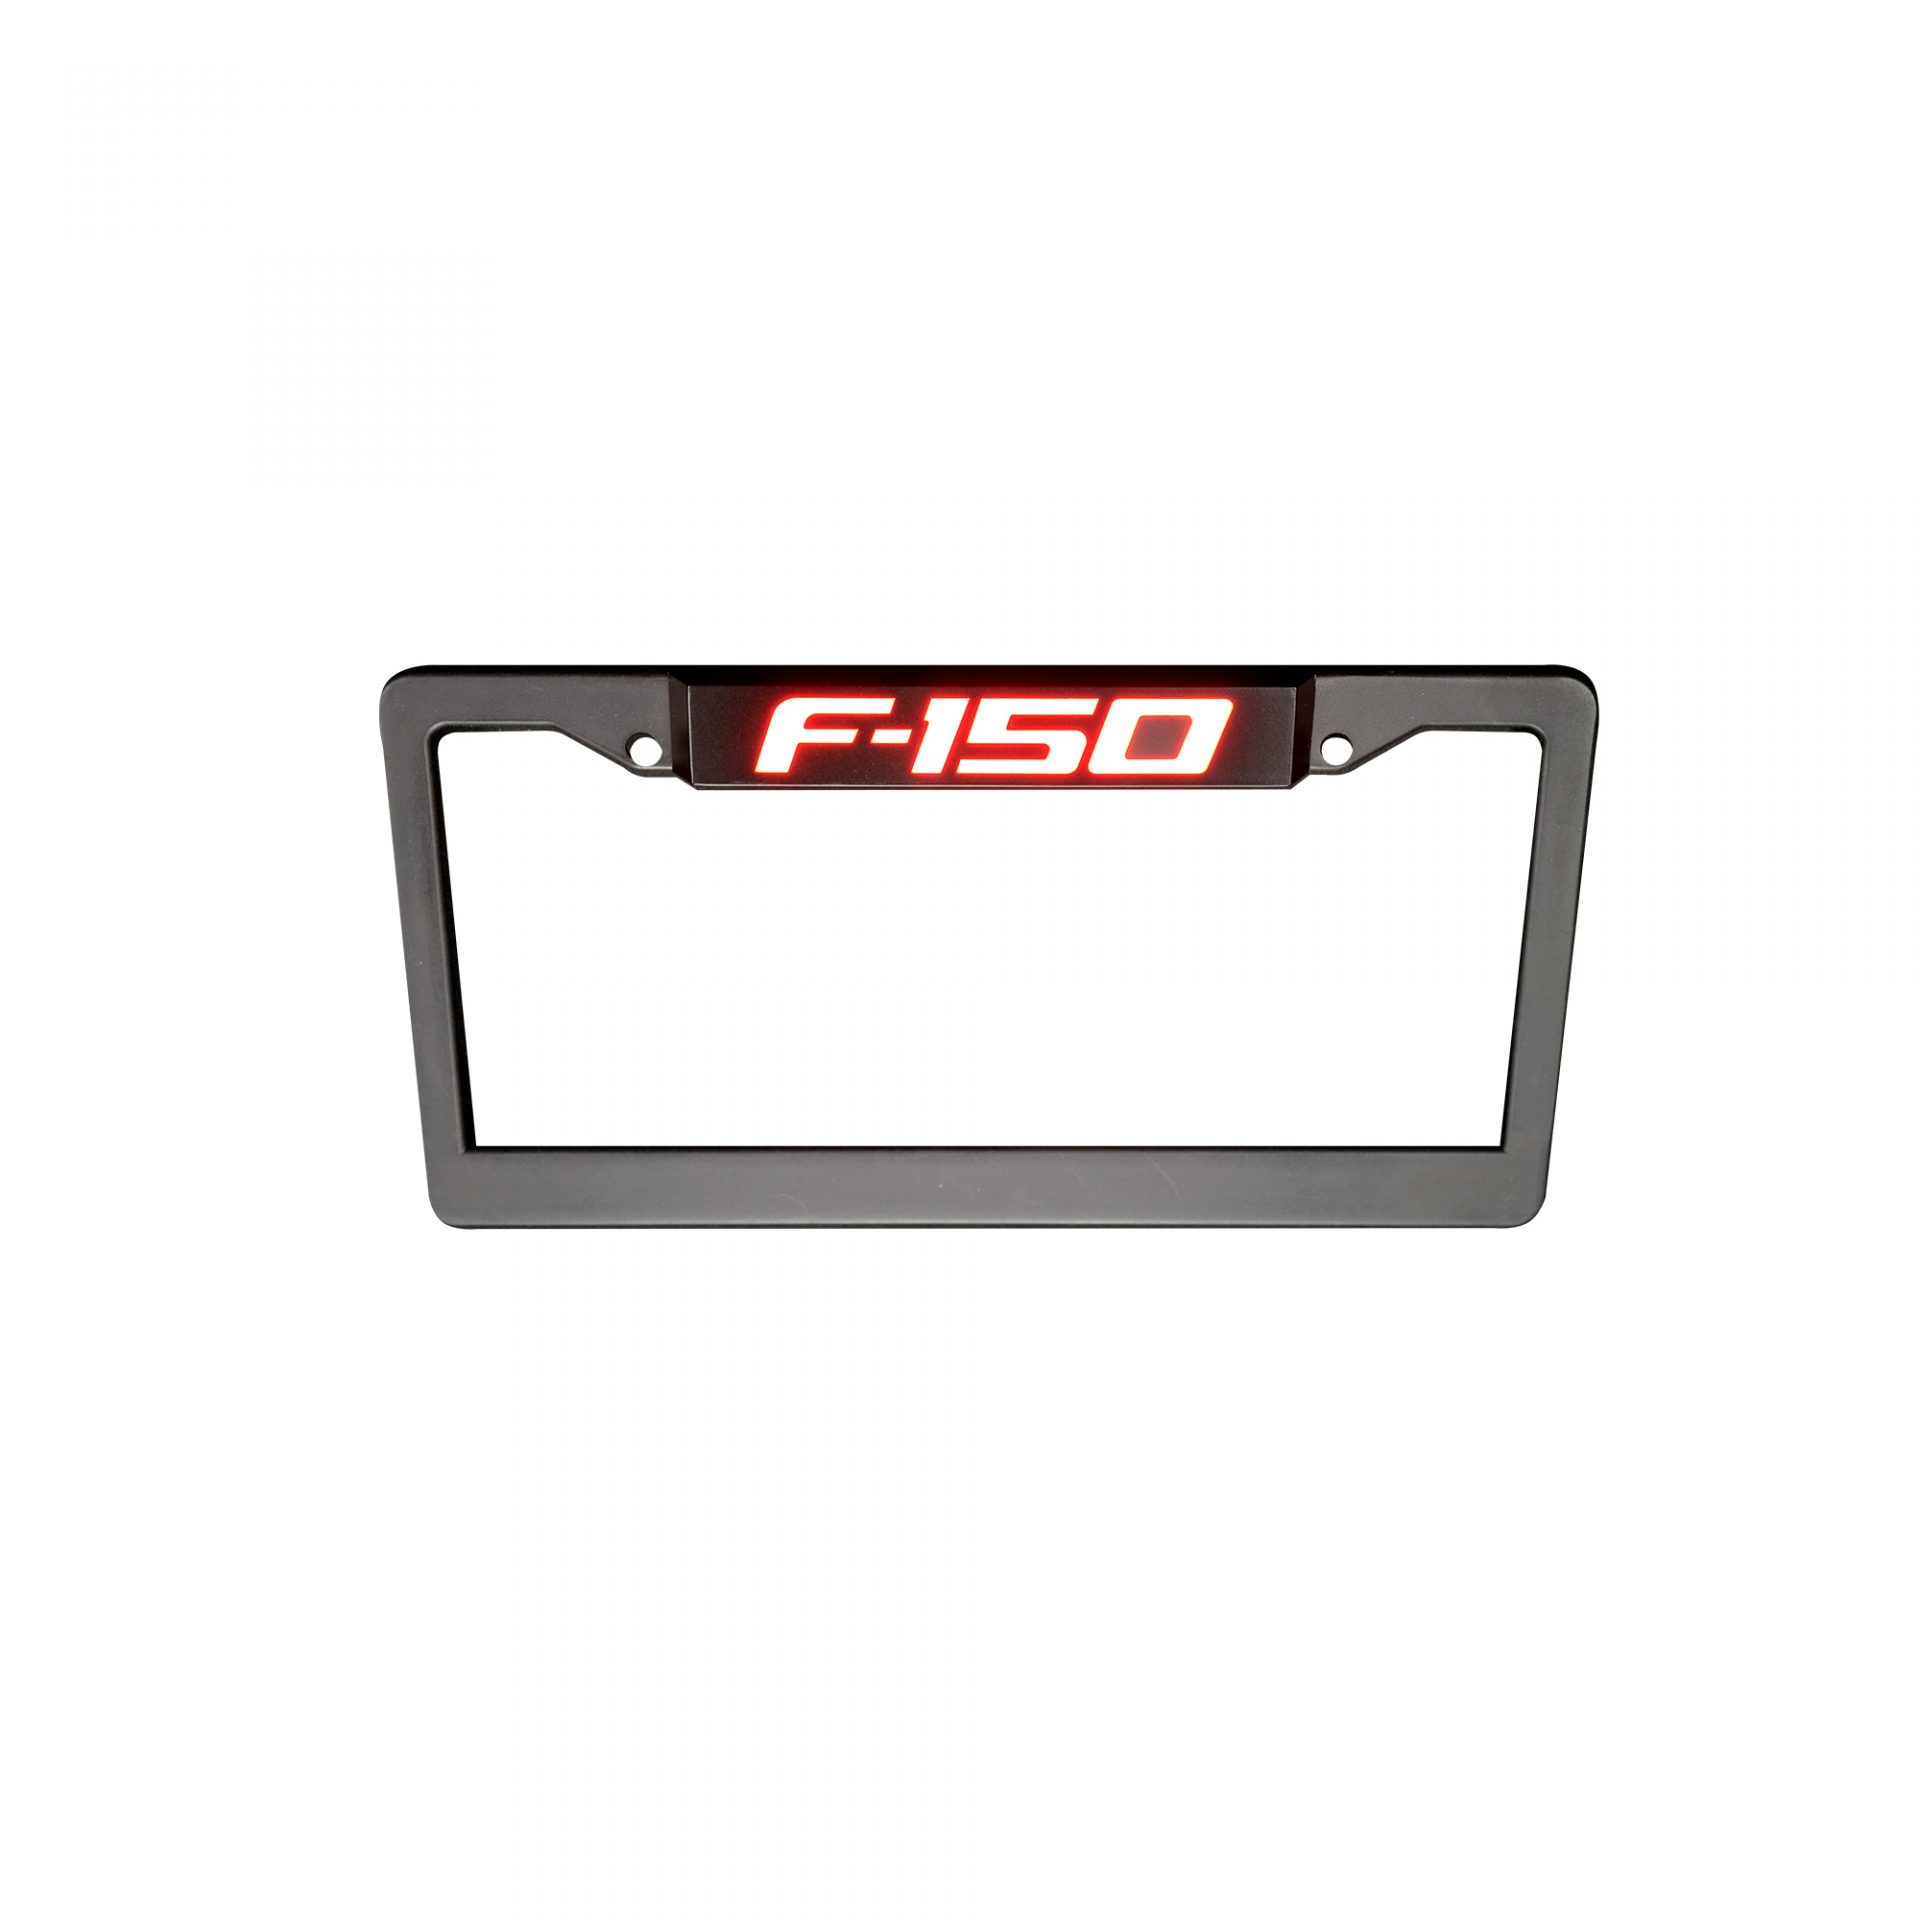 F150 Red Illuminated Plate Frame Truck & Car Parts 264311F150 ...